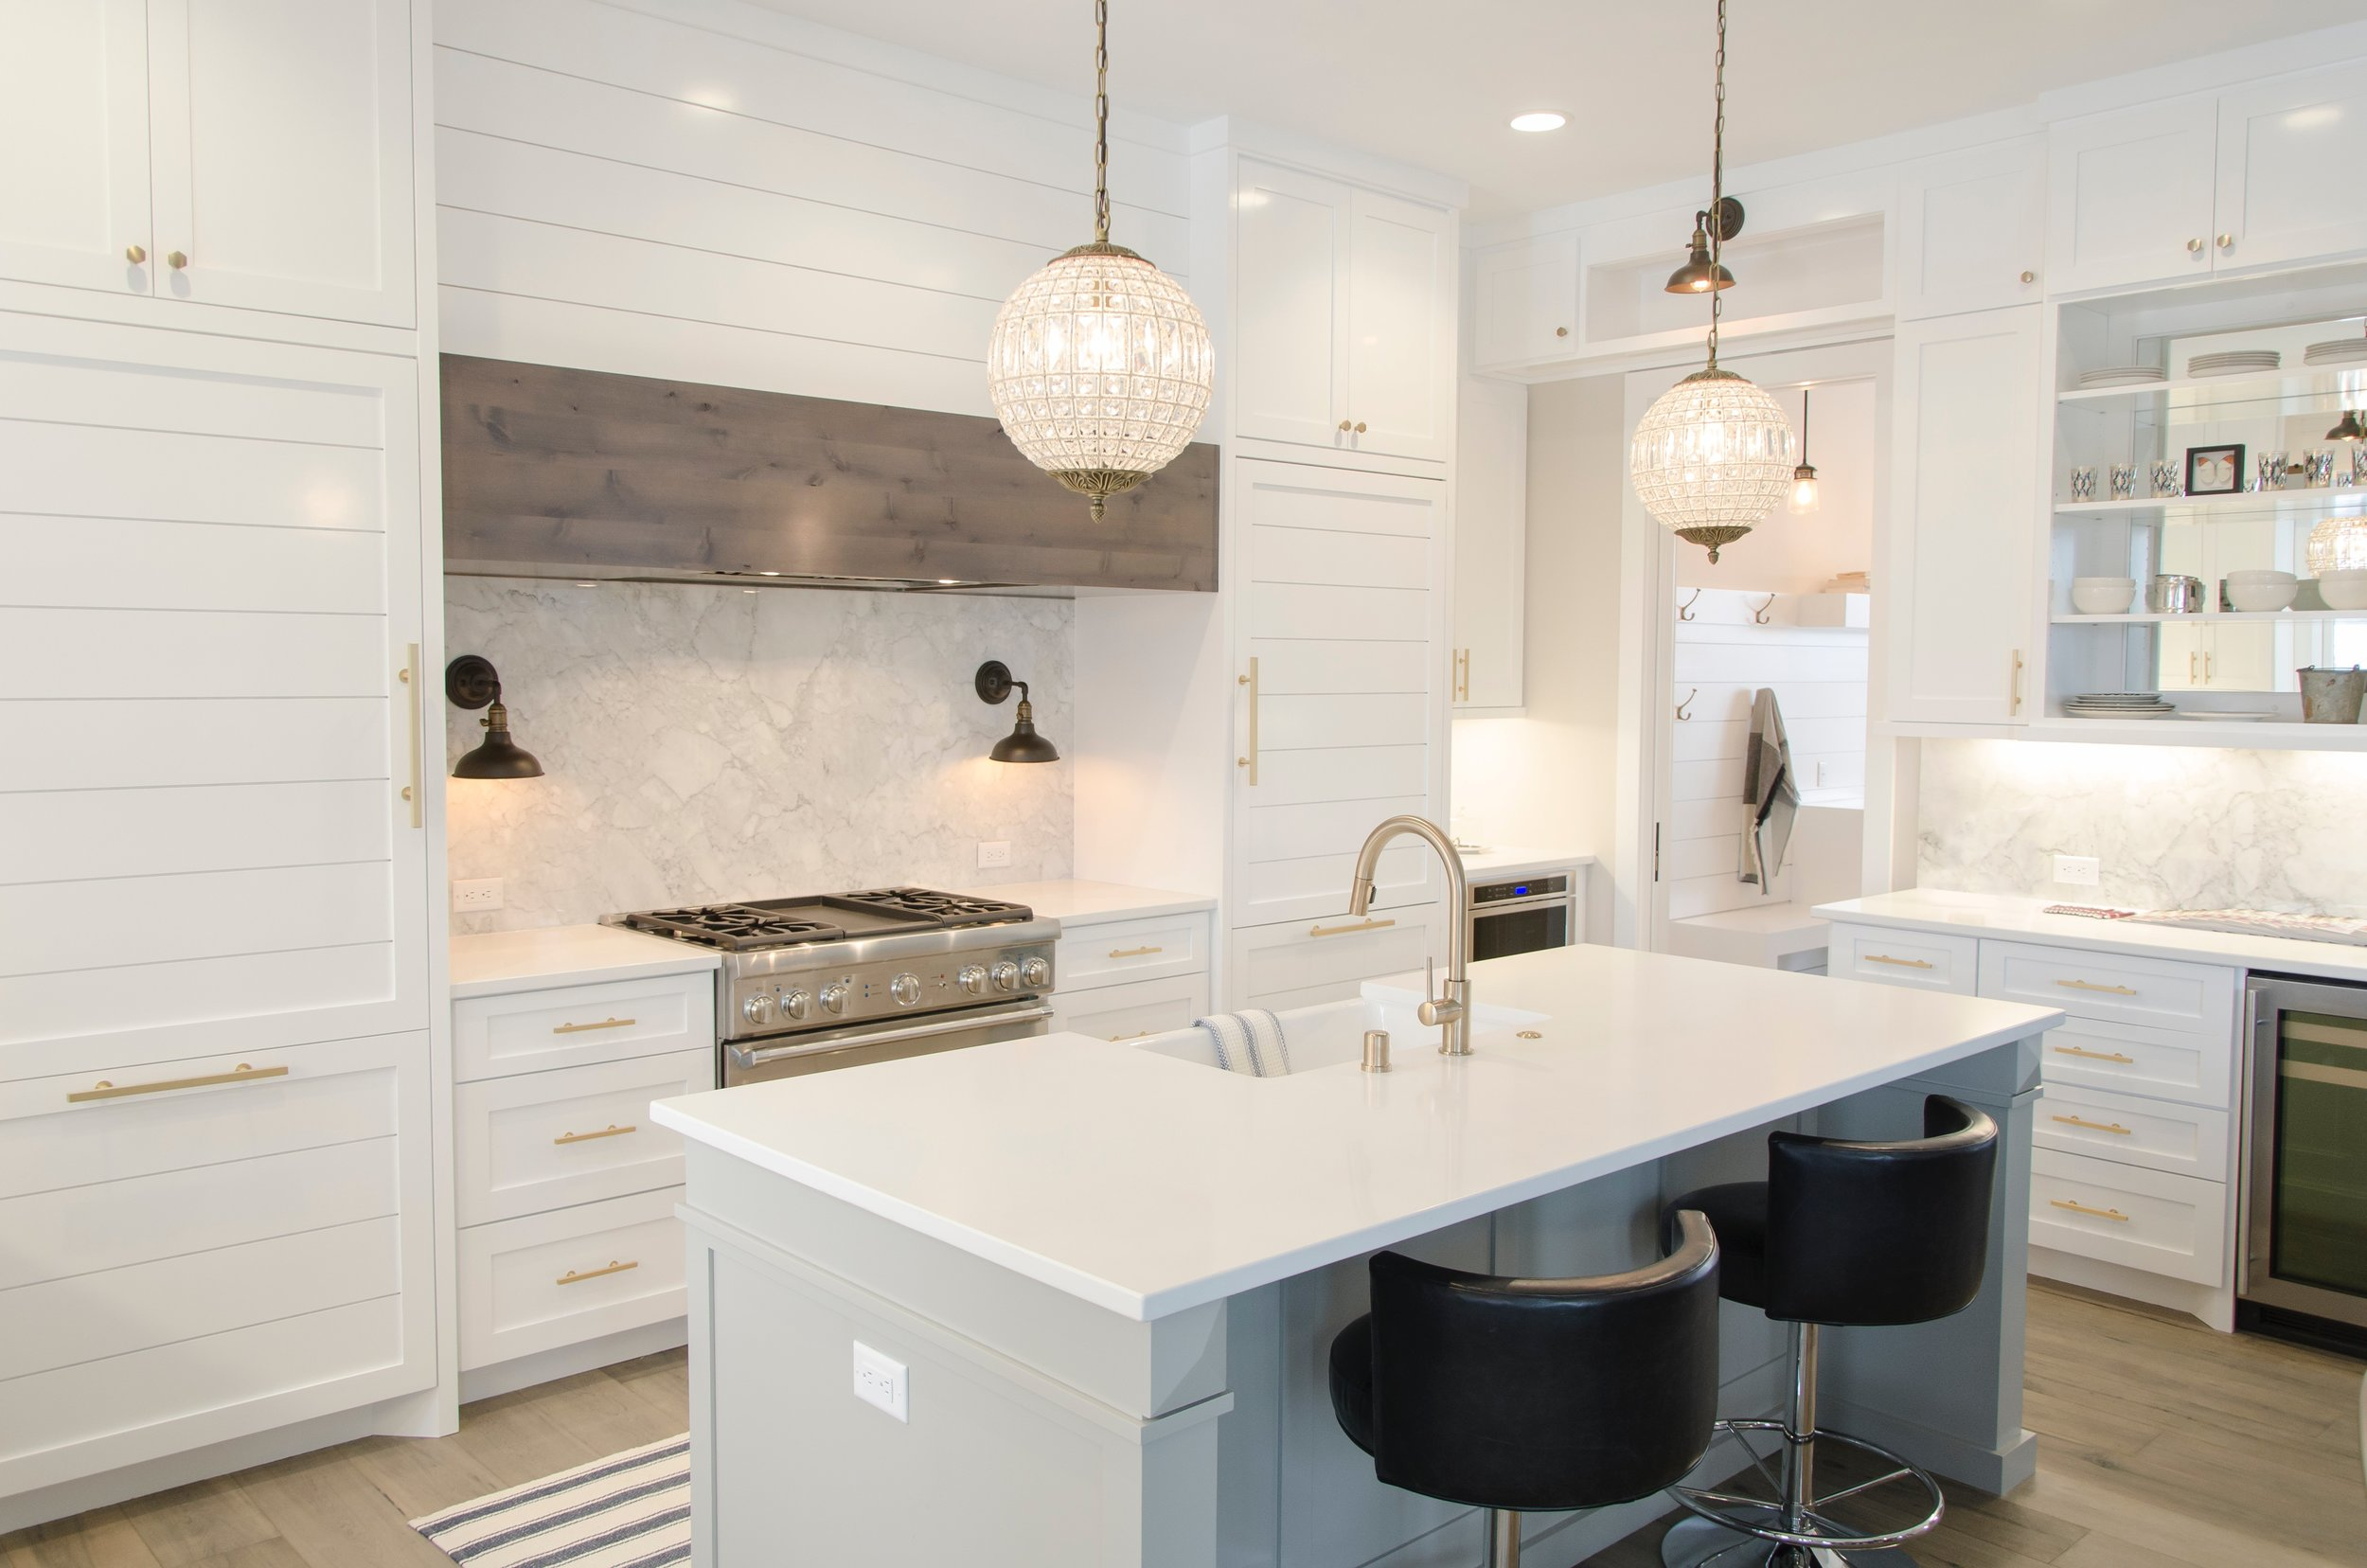 white_kitchen_with_center_island_phtography_by_aaron-huber-401200-unsplash.jpg